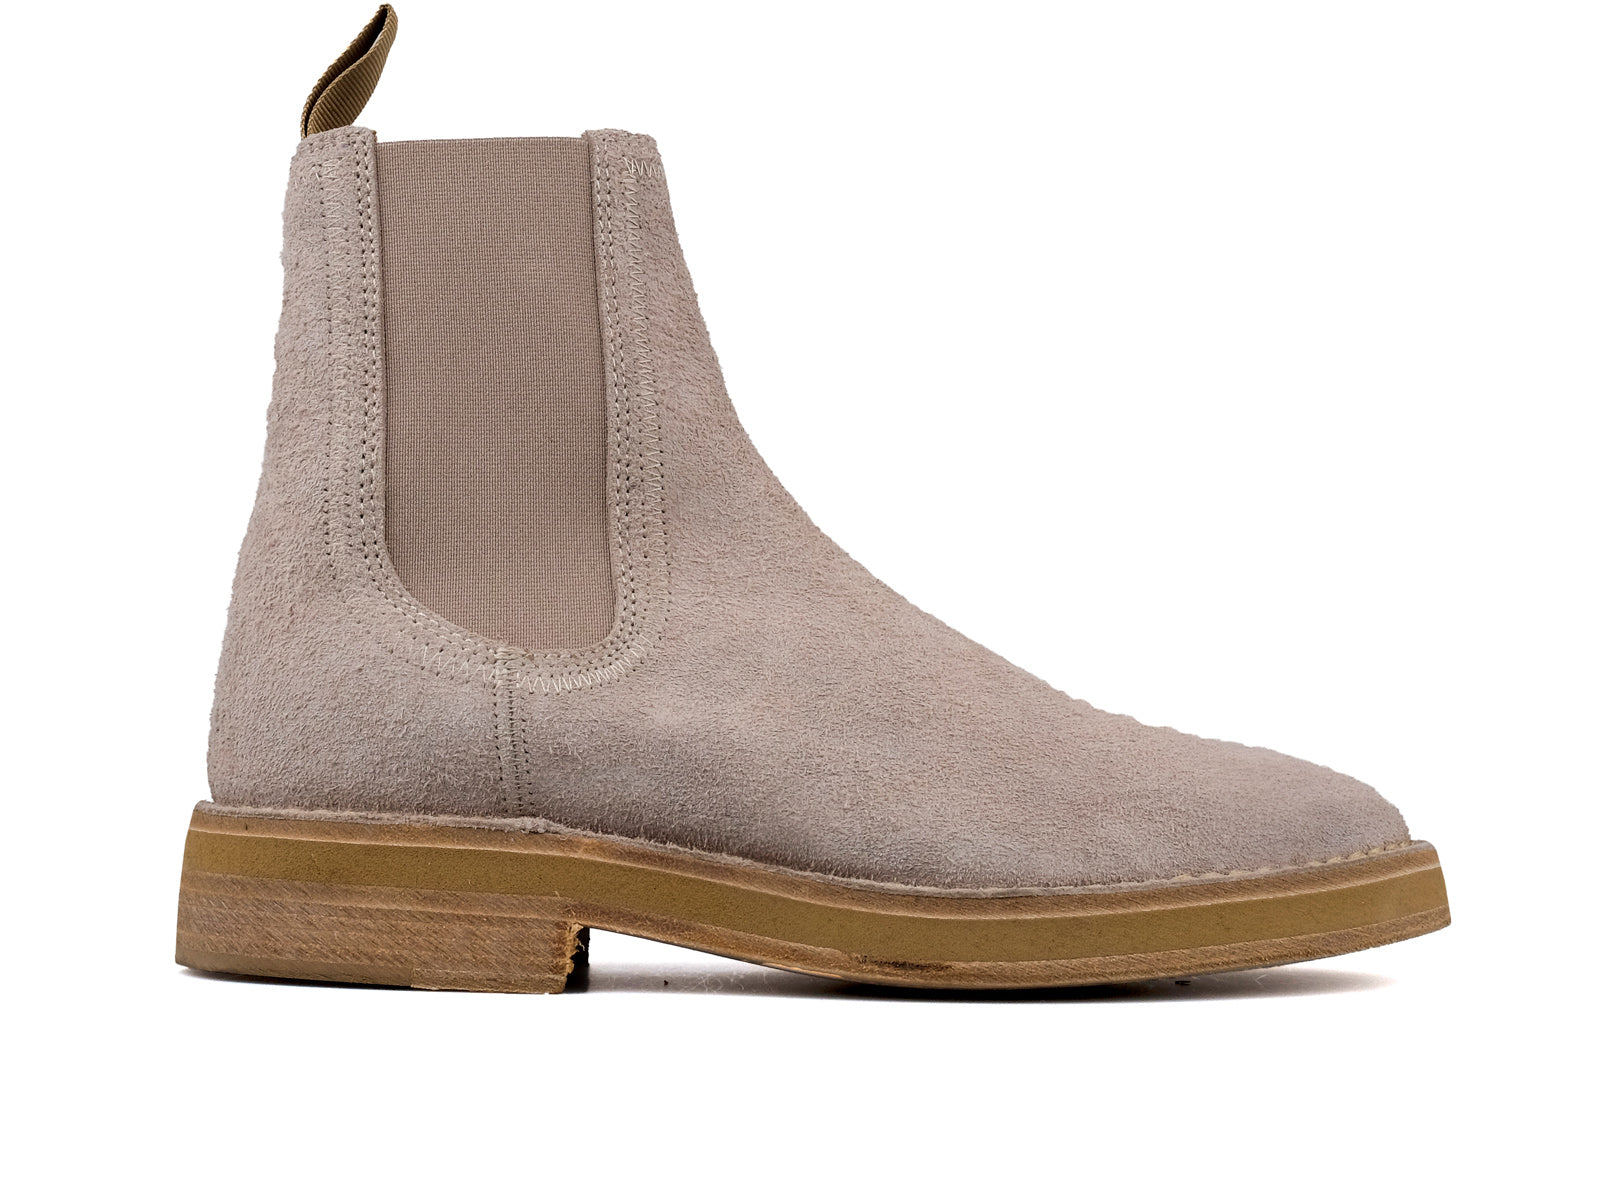 e4de4e1fb2d Yeezy Season 6 CHELSEA BOOT Light Cobblestone